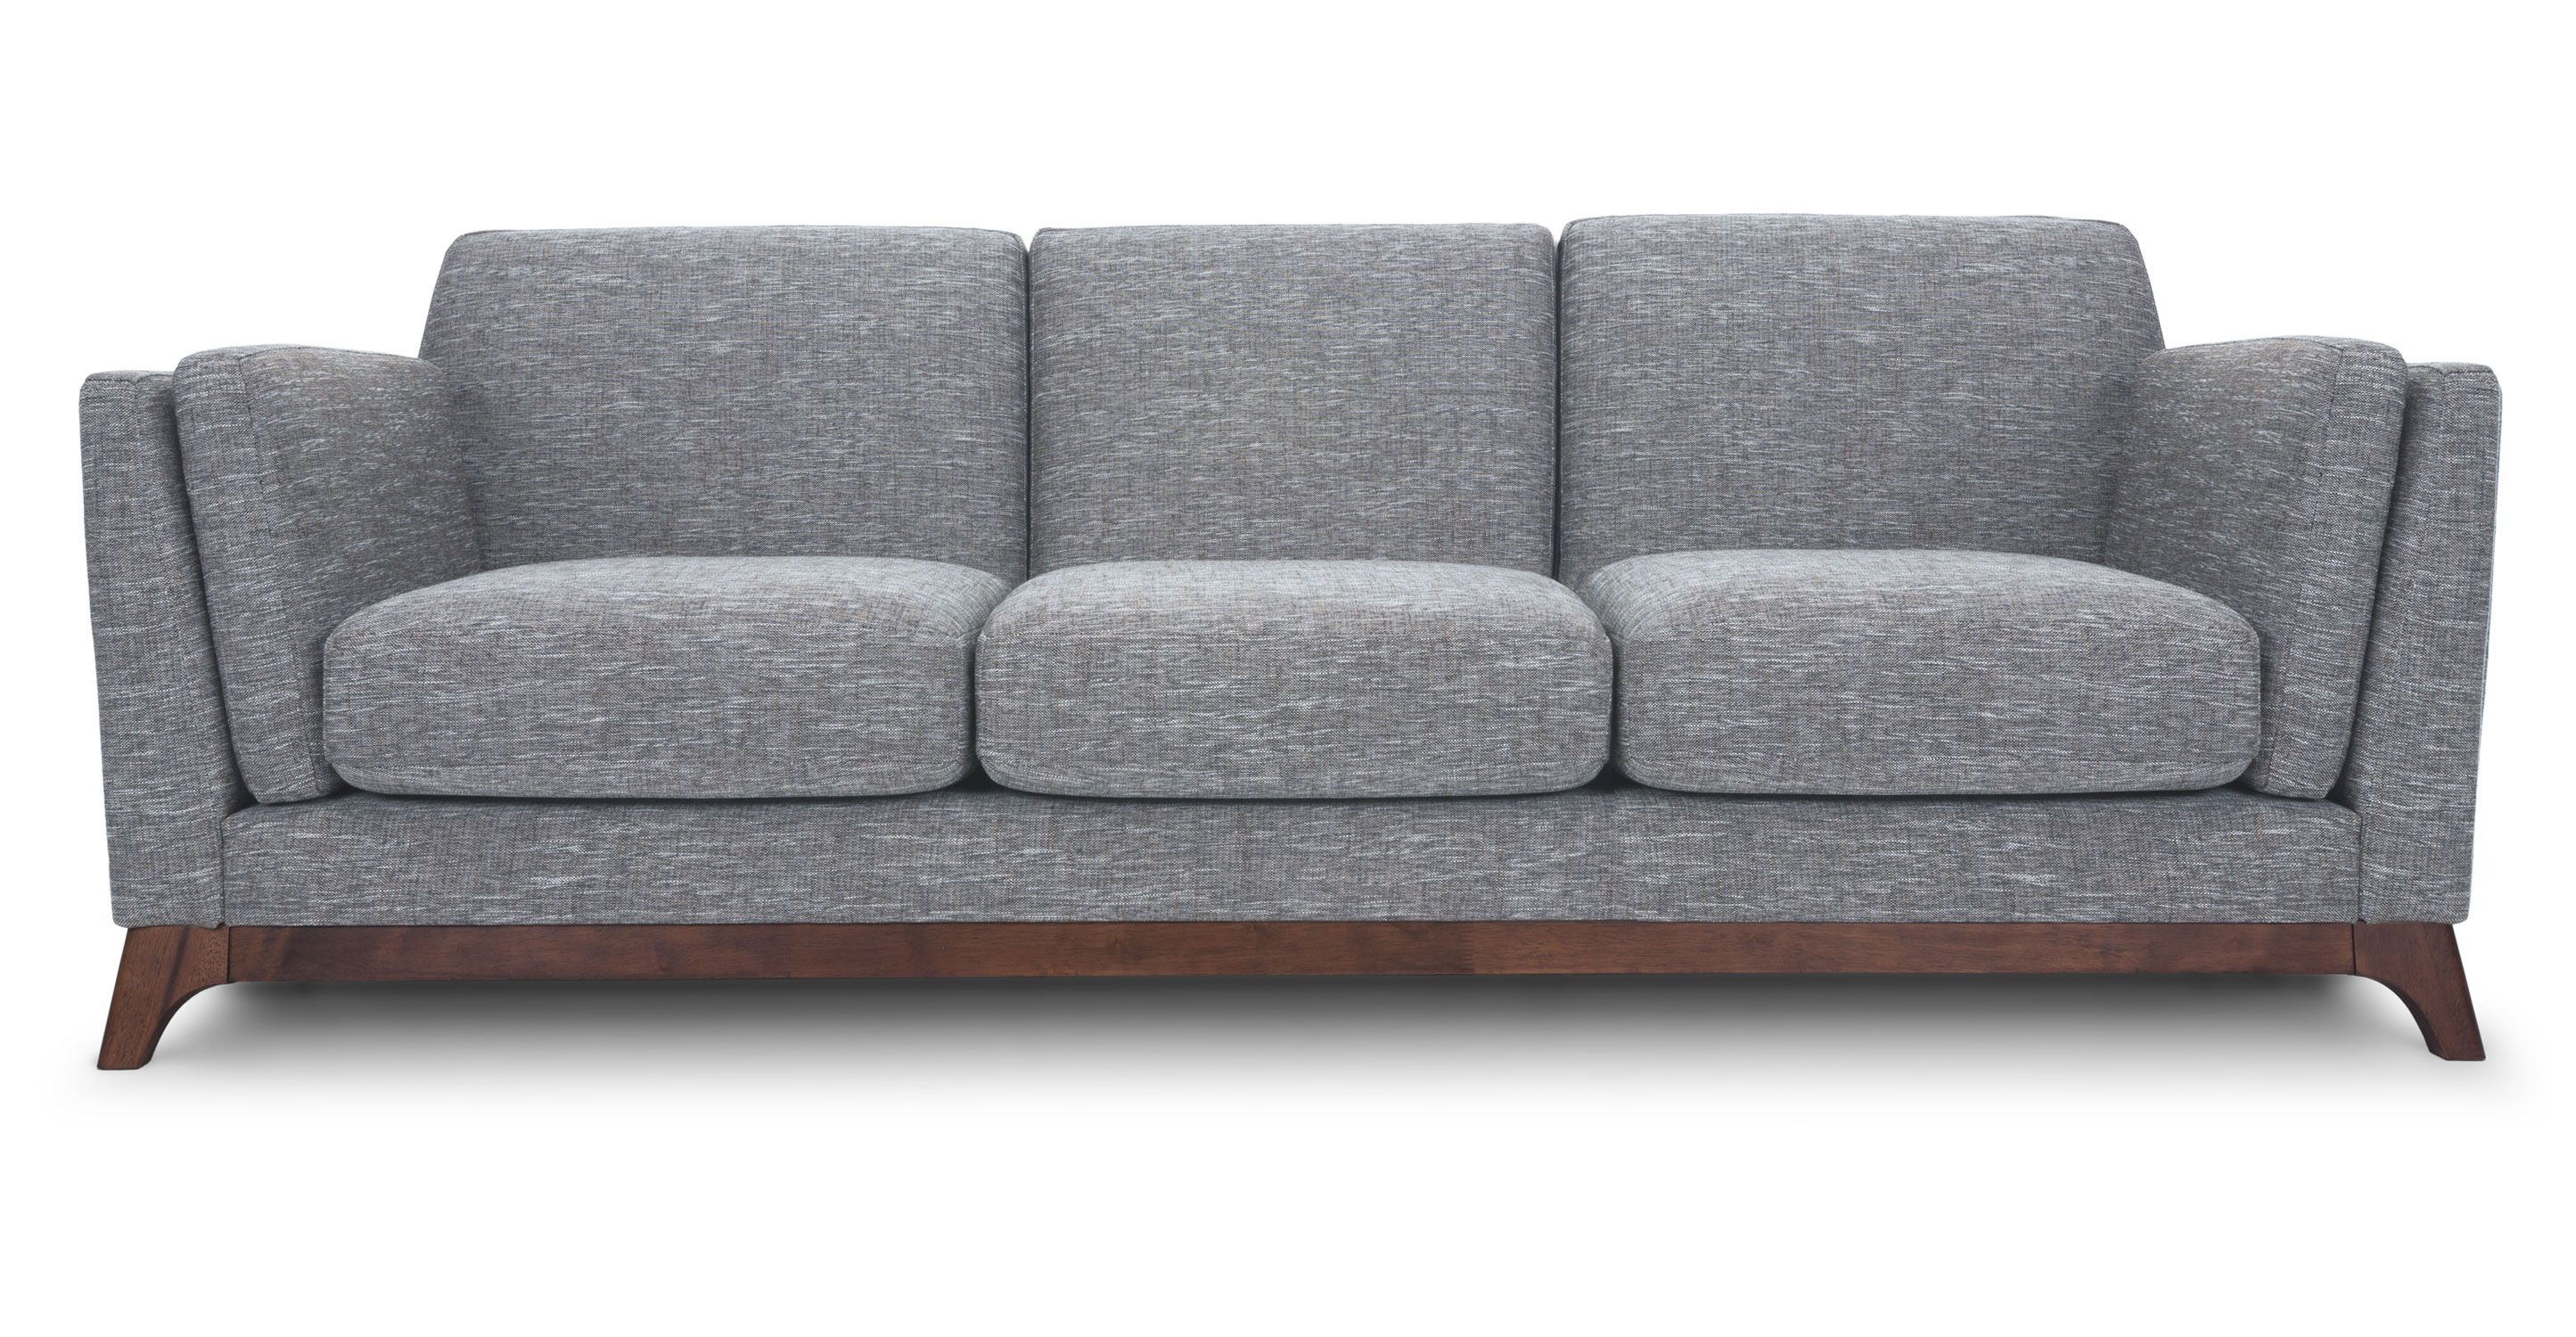 Gray sofa 3 seater with solid wood legs article ceni for Modern furniture sofa